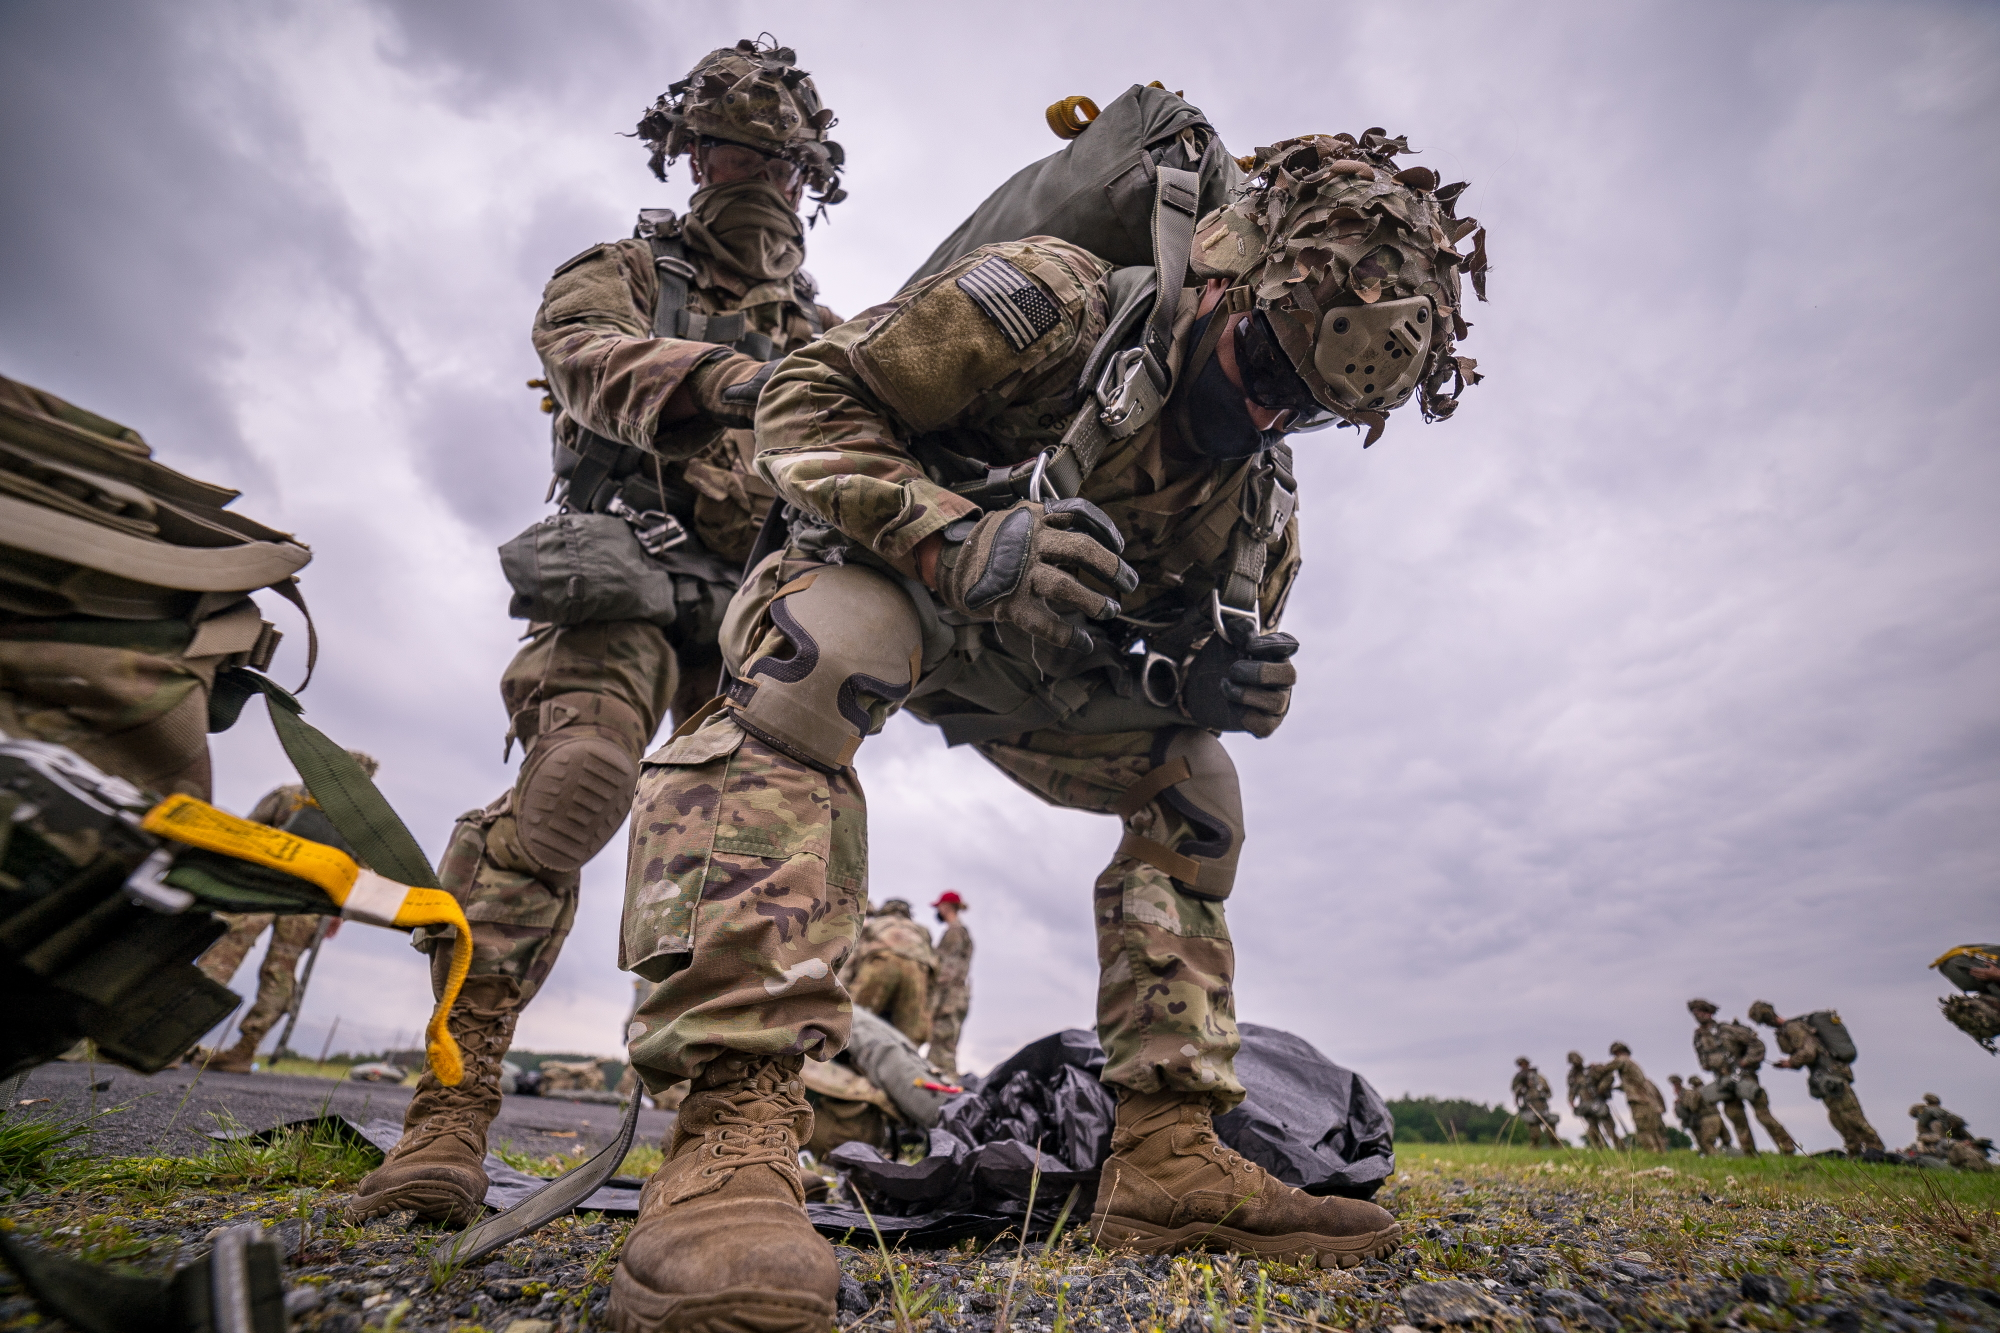 U.S. Army paratroopers from the 1st Squadron (Airborne), 91st Cavalry Regiment, 173rd Airborne Brigade, help each other don parachutes in preparation for an airborne jump at Grafenwoehr Army Air Field, Germany, June 10, 2020. (Staff Sgt. Christopher Stewart/Army)